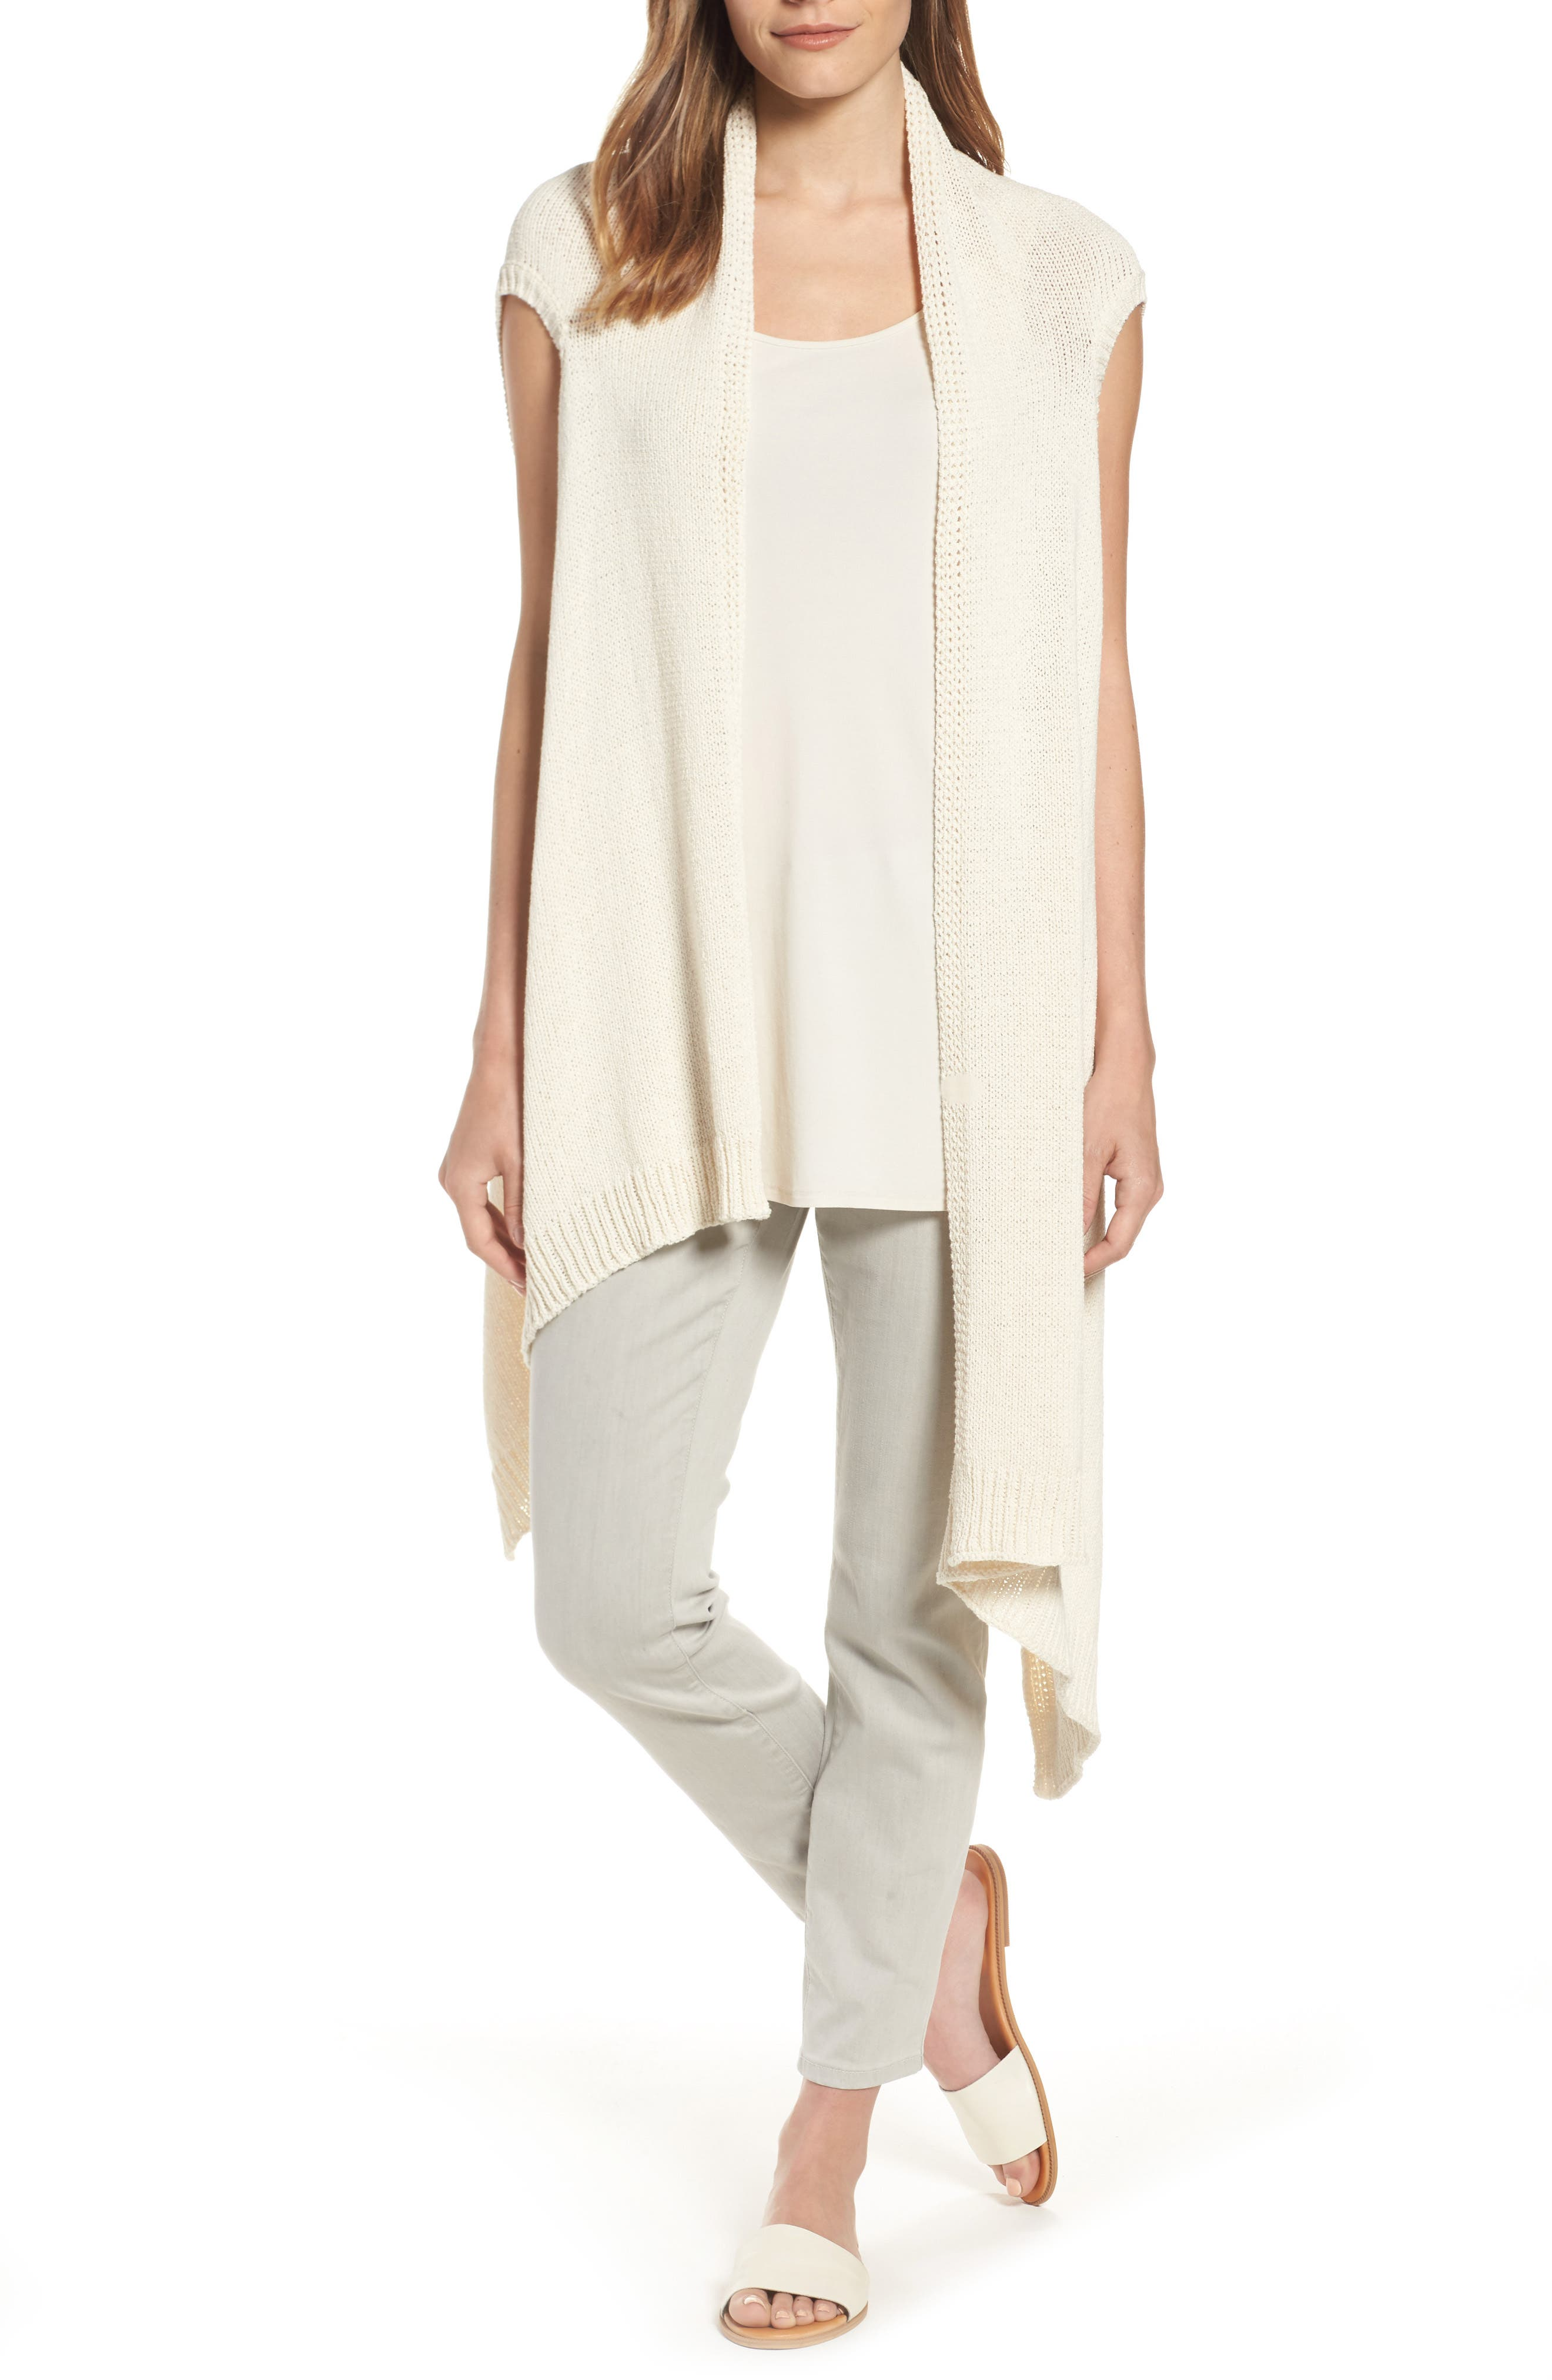 Alternate Image 1 Selected - Eileen Fisher Cotton Blend Knit Asymmetrical Wrap (Regular & Petite)